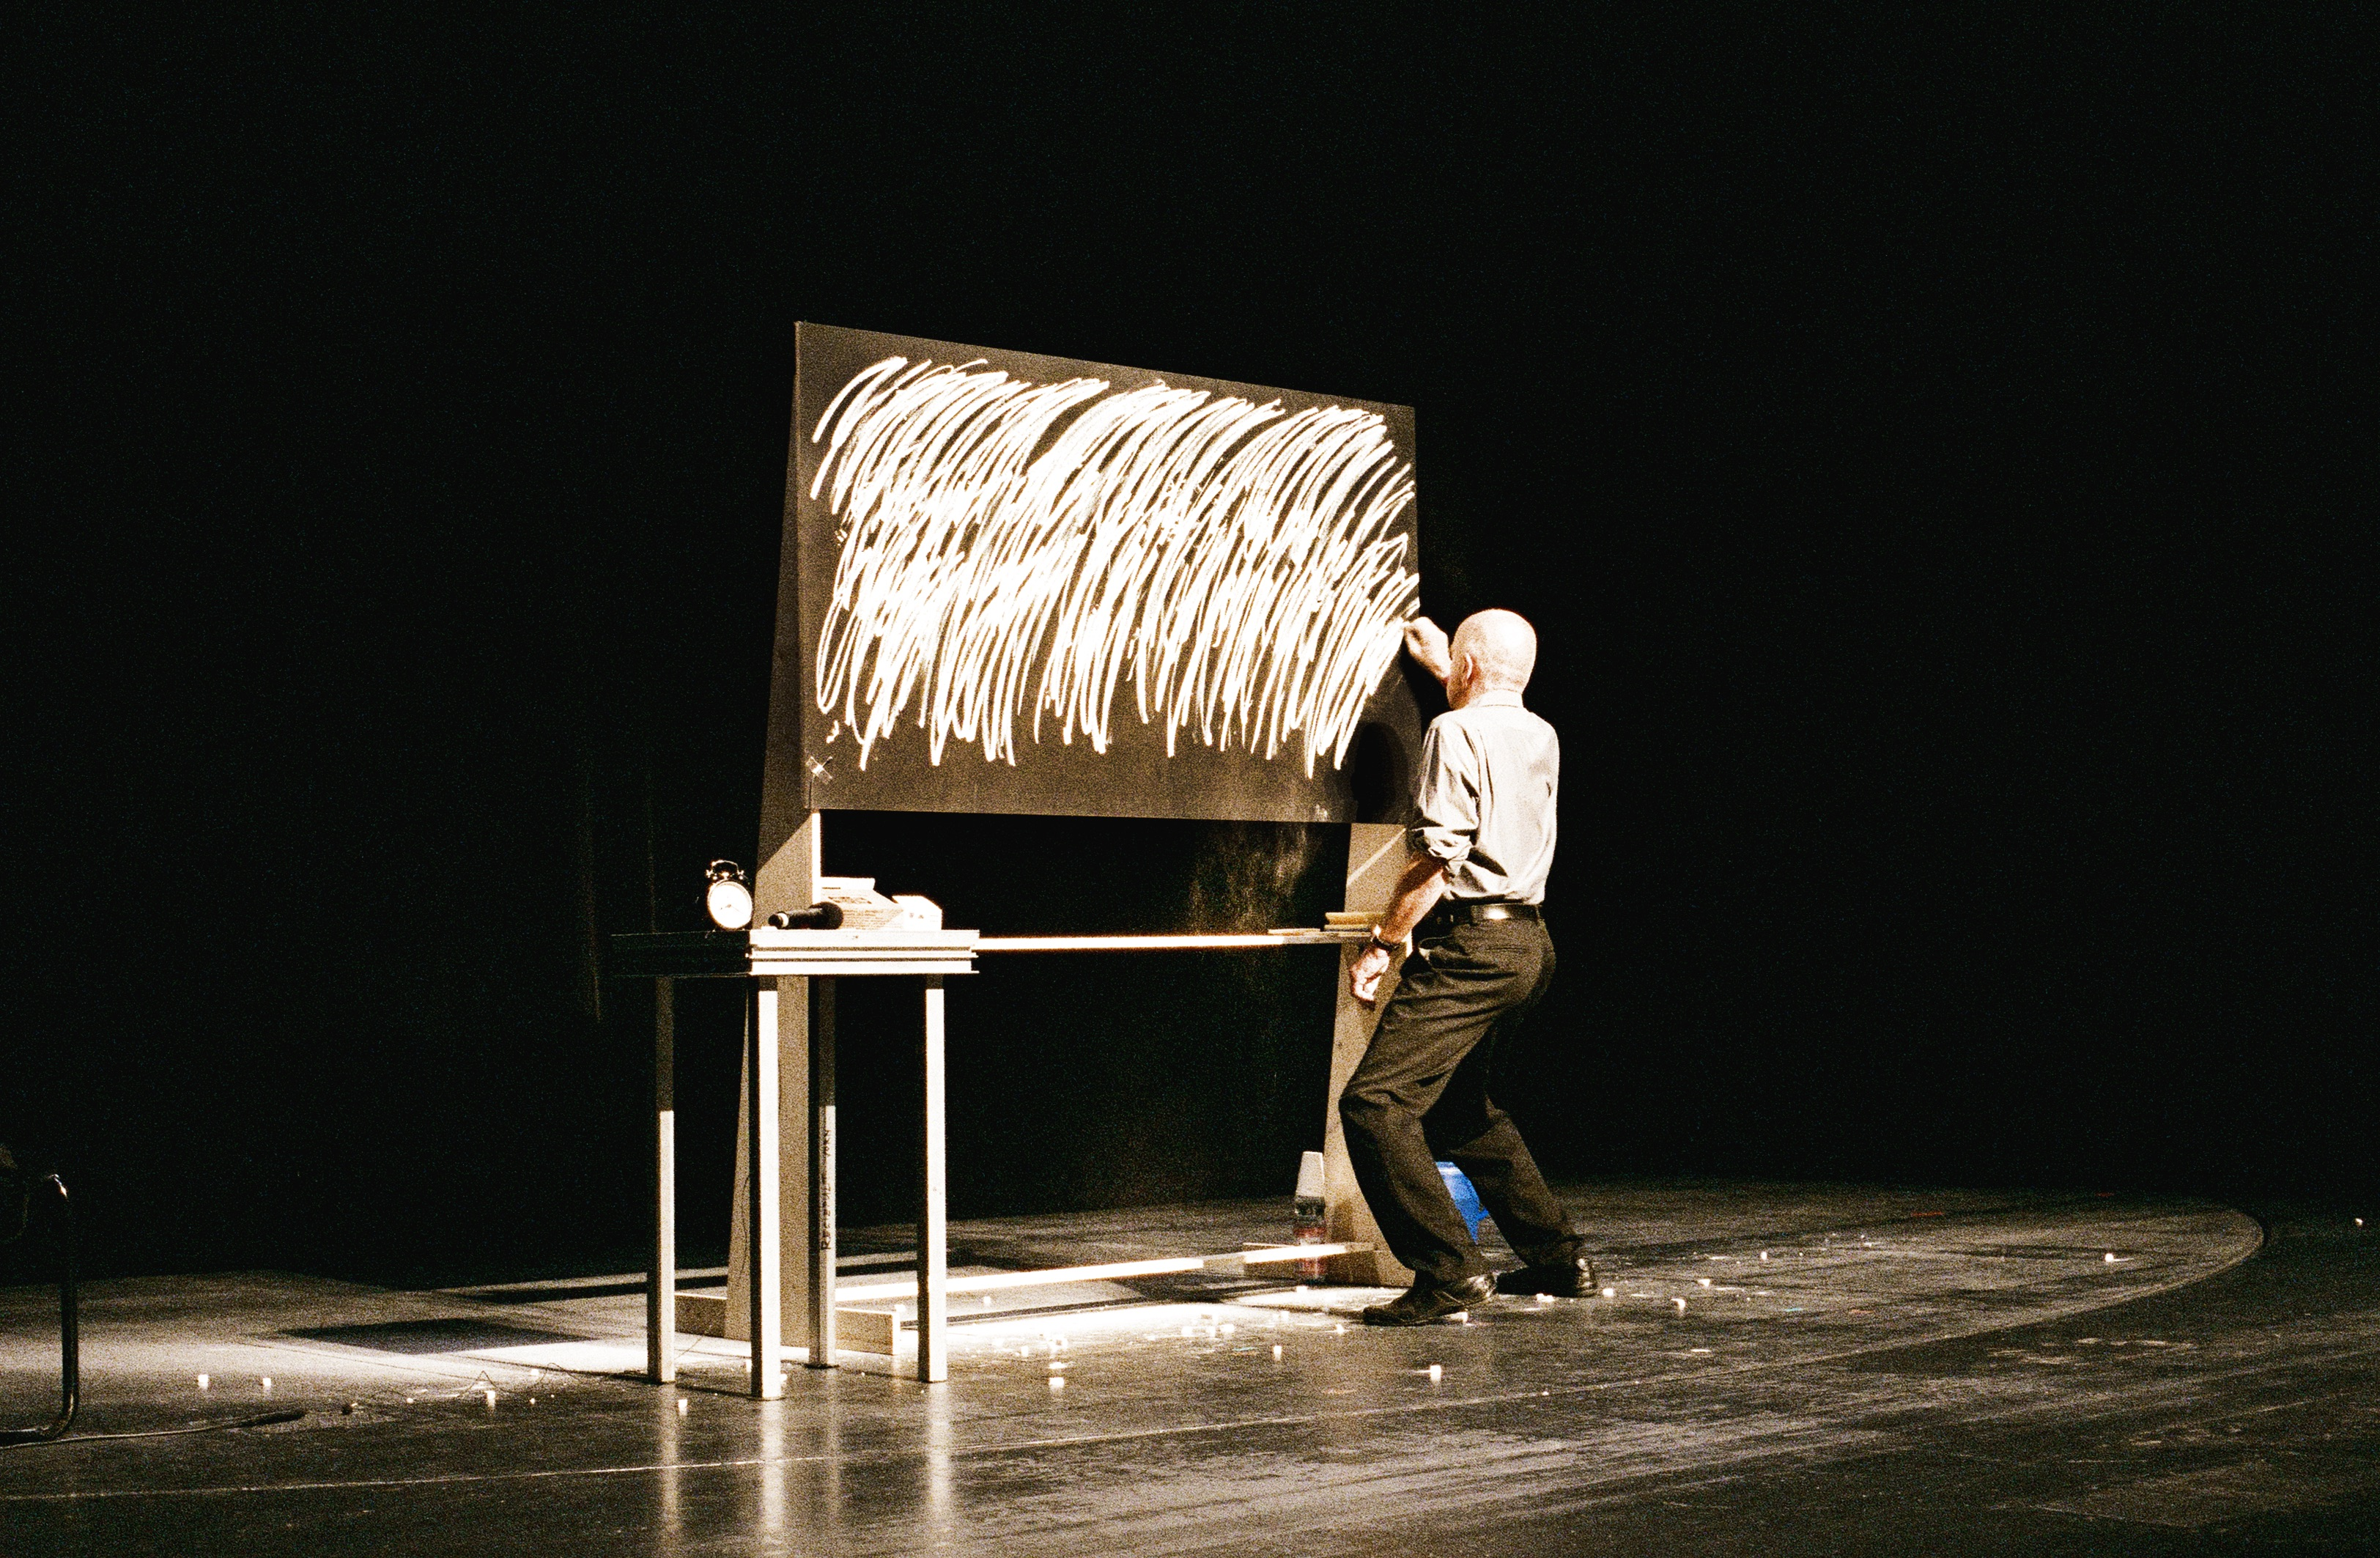 Jarosław Kozłowski, Continuum XXXVI performance, Berlin 2013, photo by Andrea Stapper, courtesy of Artists' Archives of The Museum of Modern Art in Warsaw.